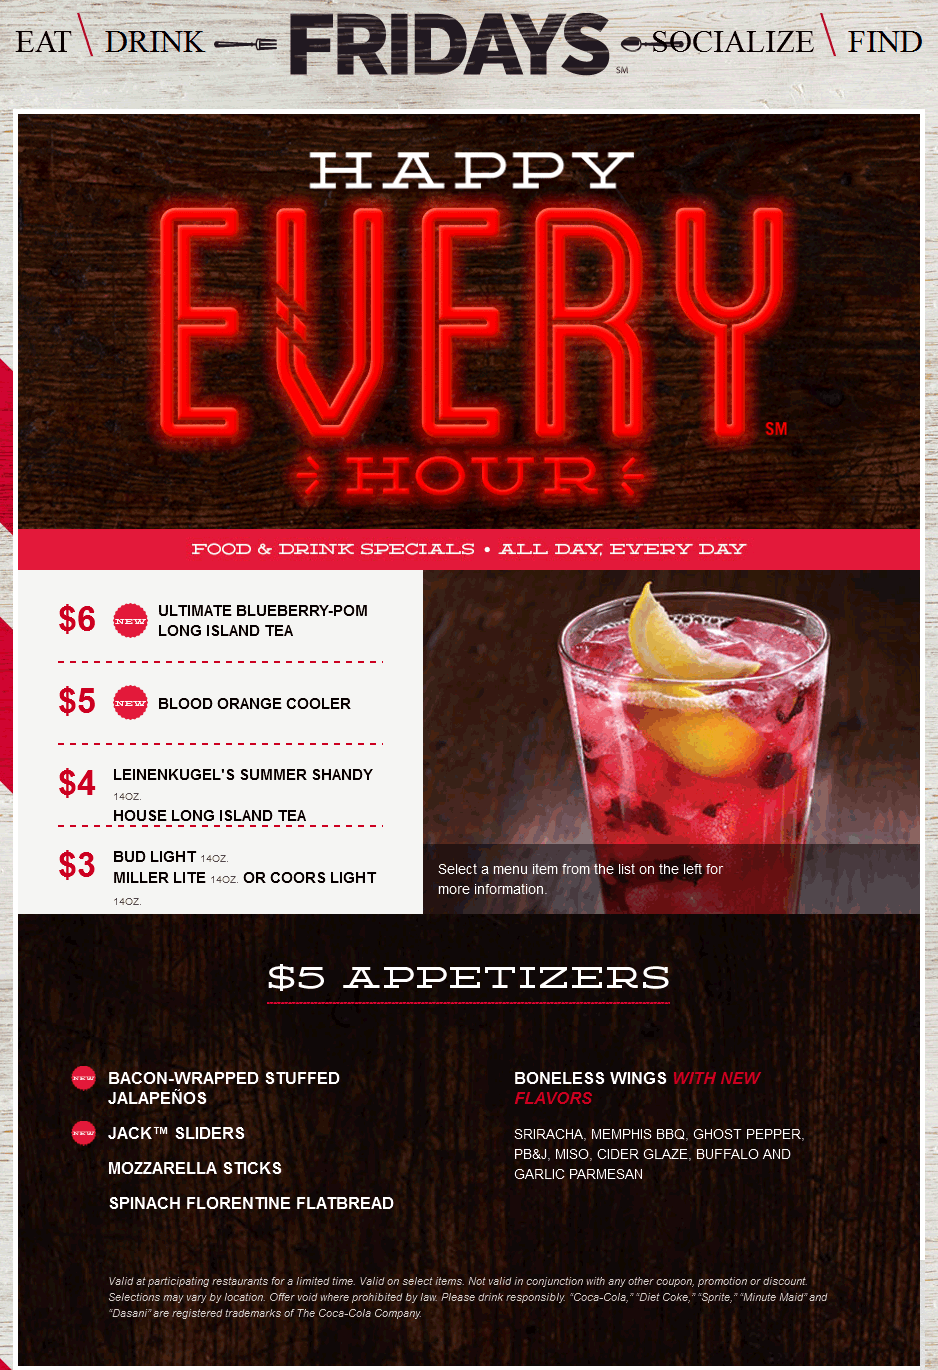 TGI Fridays Coupon December 2018 $5 appetizers & drink deals going on at TGI Fridays